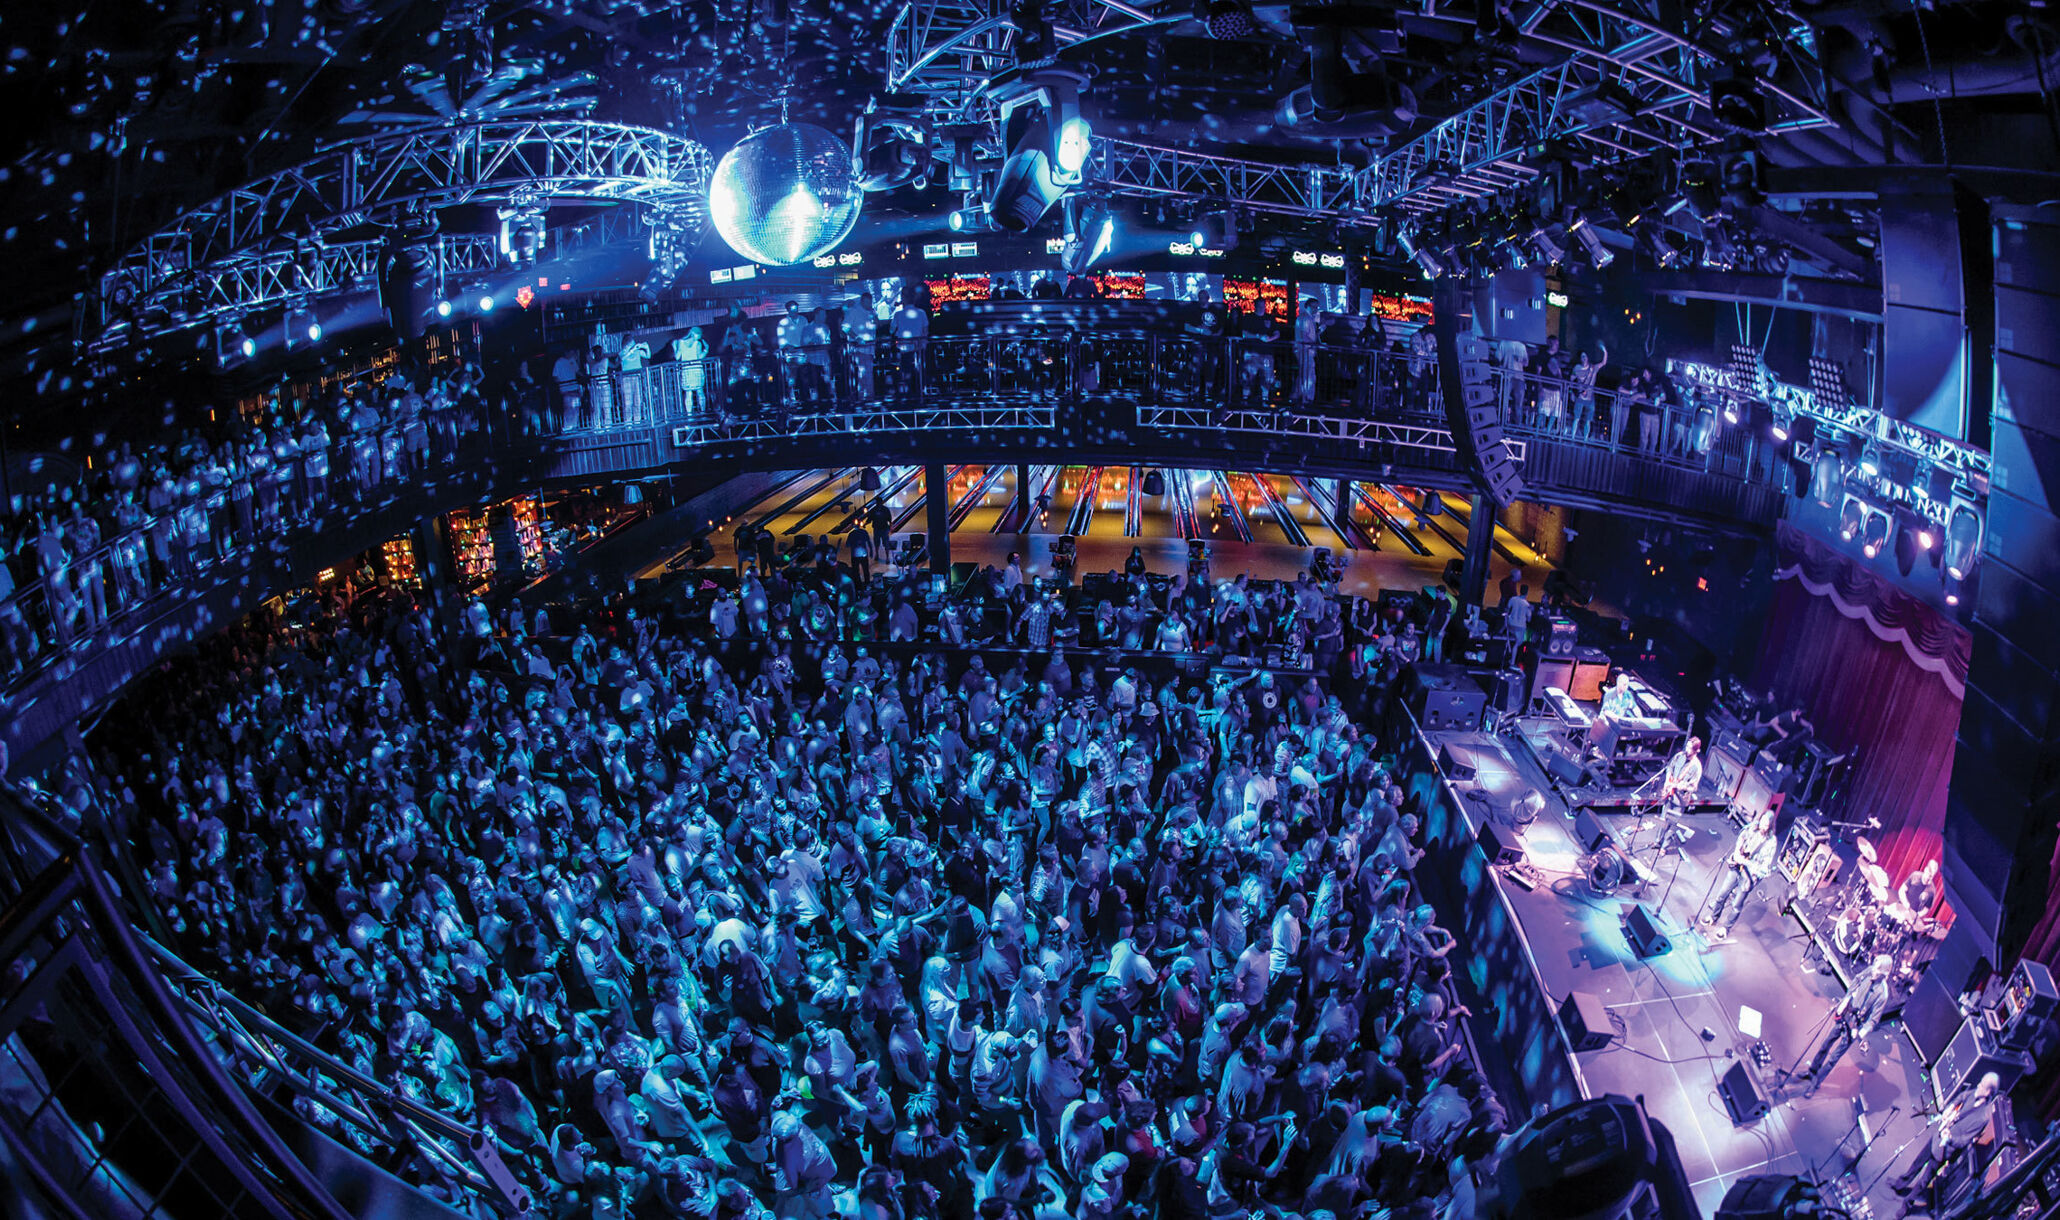 Ns Boutique Brooklyn Bowl Las Vegas Nv 16X9 05-1